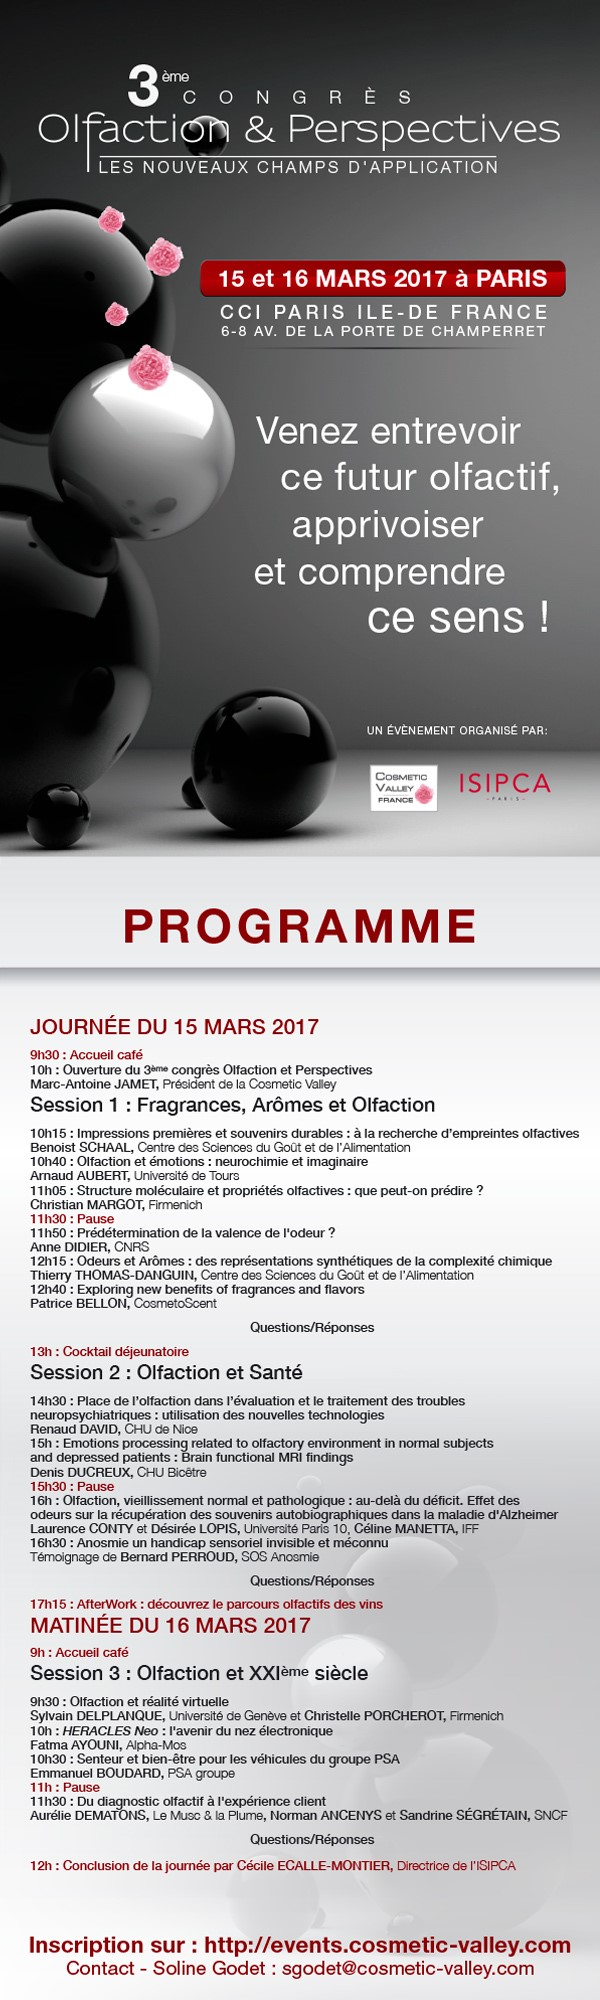 Programme Congrès Olfaction & Perspectives 2017